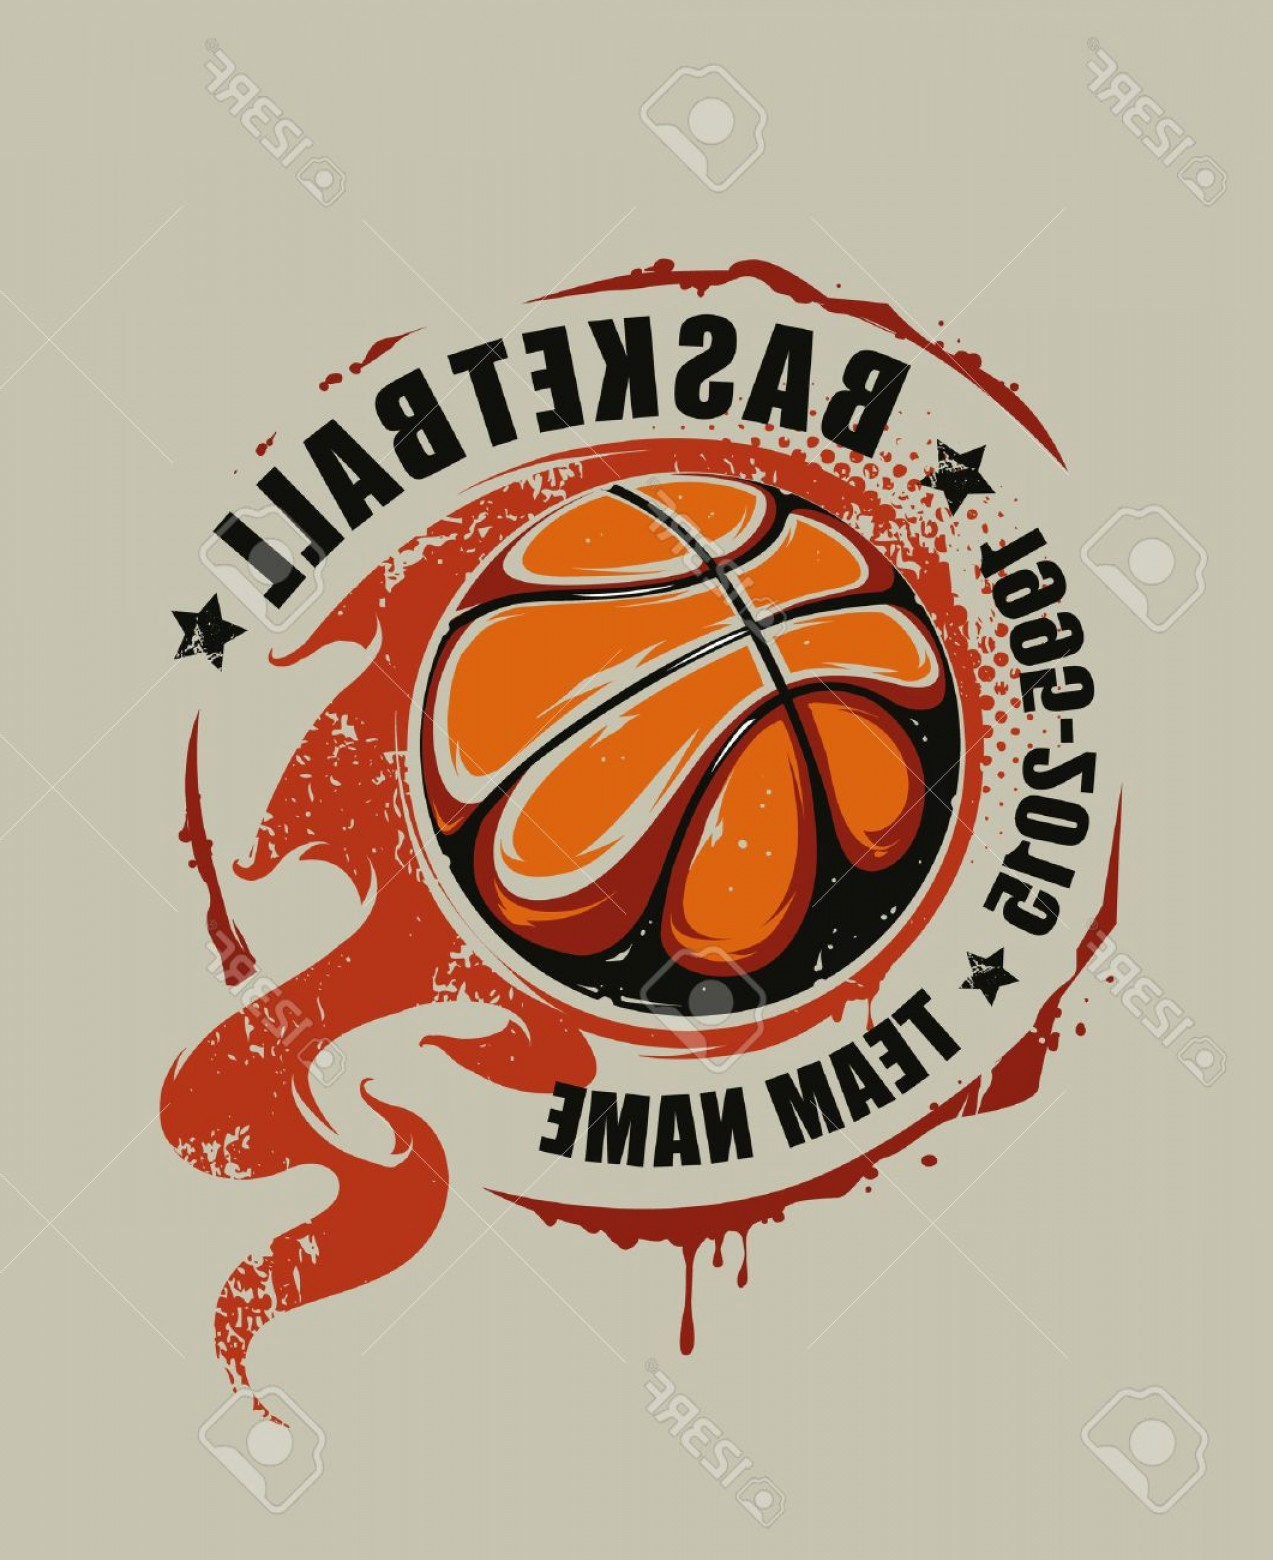 Basketball Vector Graphic Designs: Photostock Vector Grunge Basketball Emblem Flaming Basketball Graffiti Vector Art